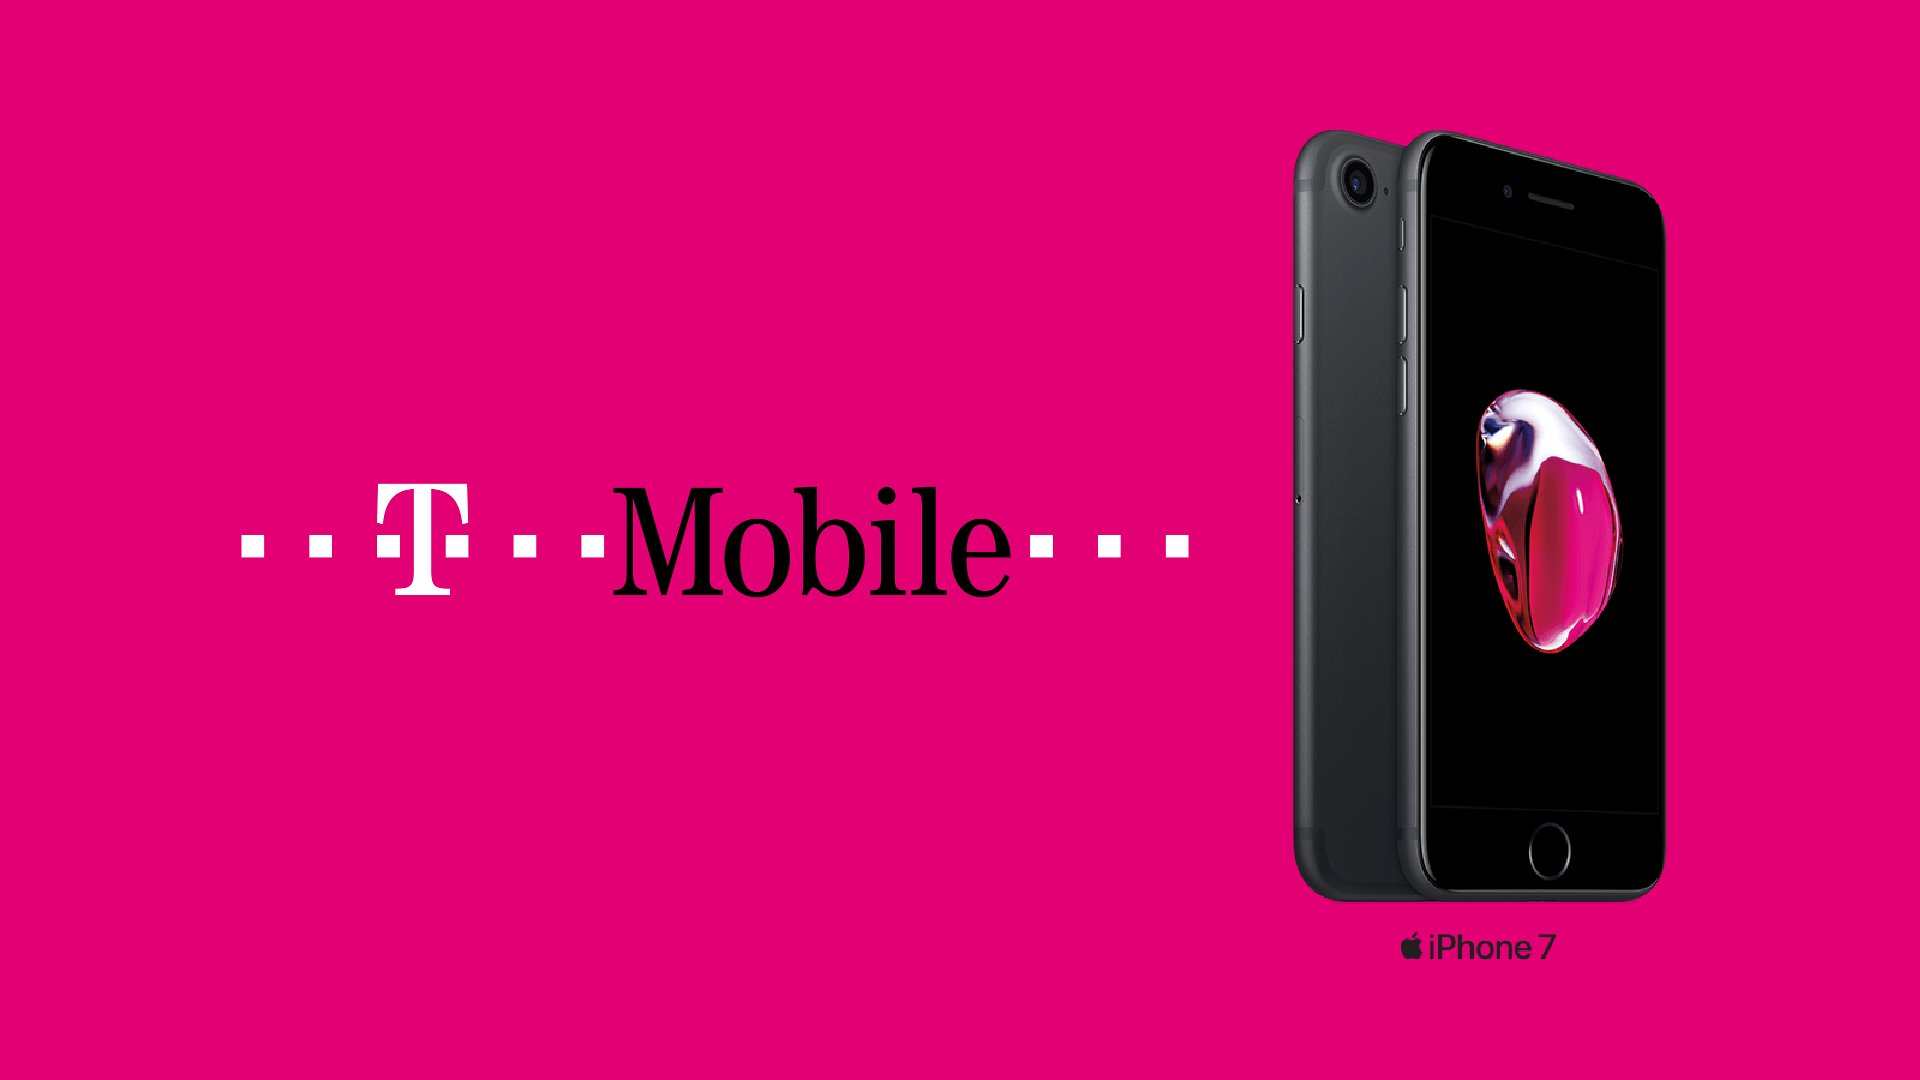 Iphone Mobile T Mobile Is Offering Free Iphone 7 If You Switch To Their